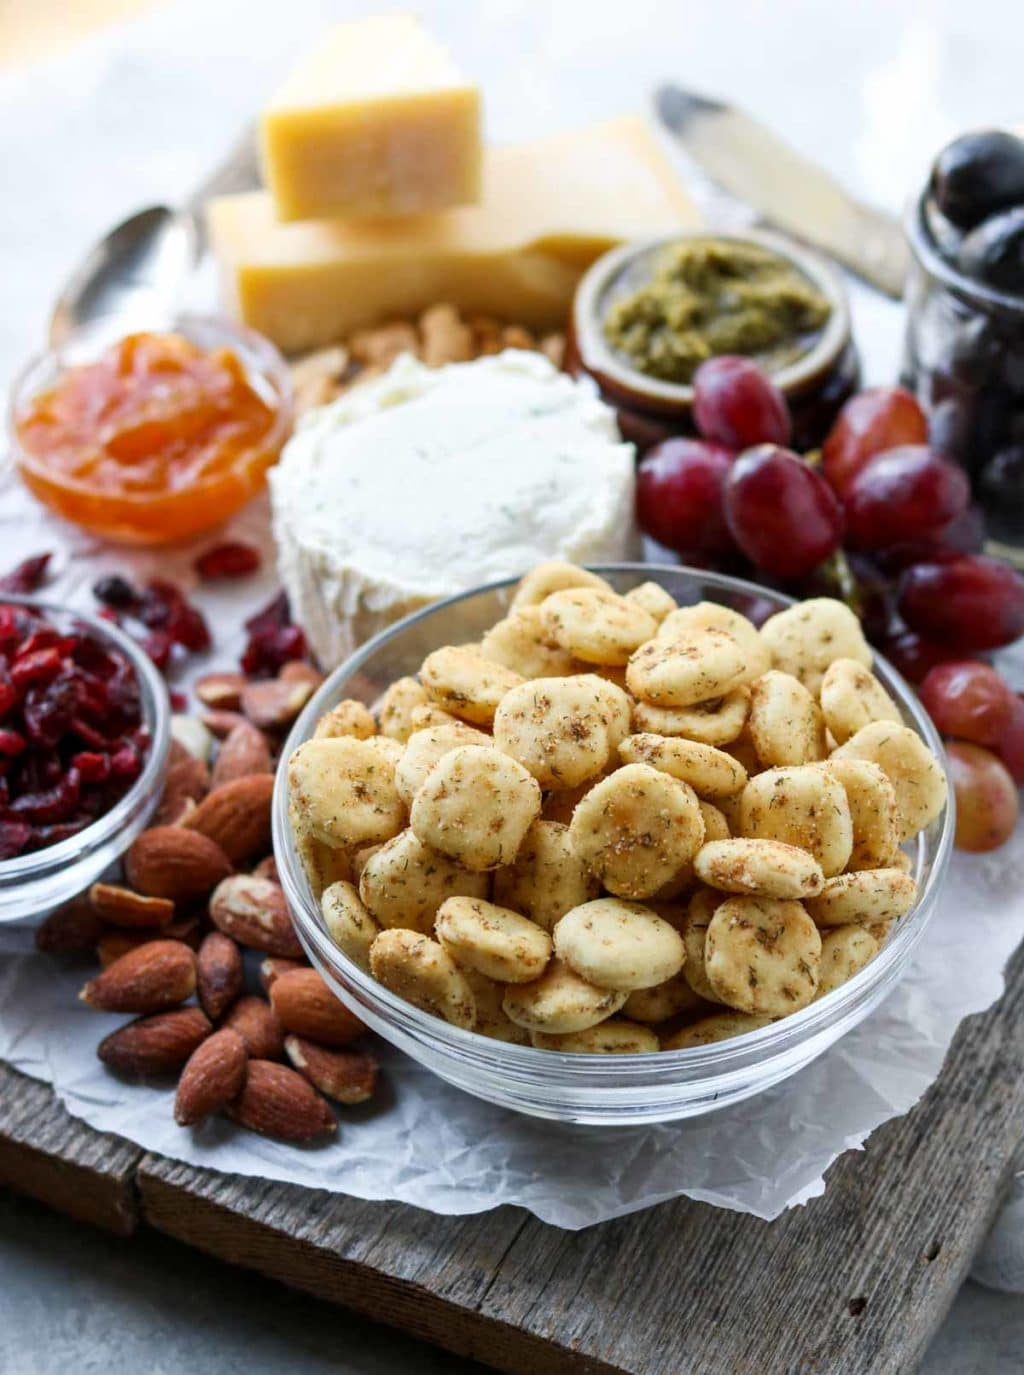 a cheese, nut and fruit board with seasoned oyster crackers